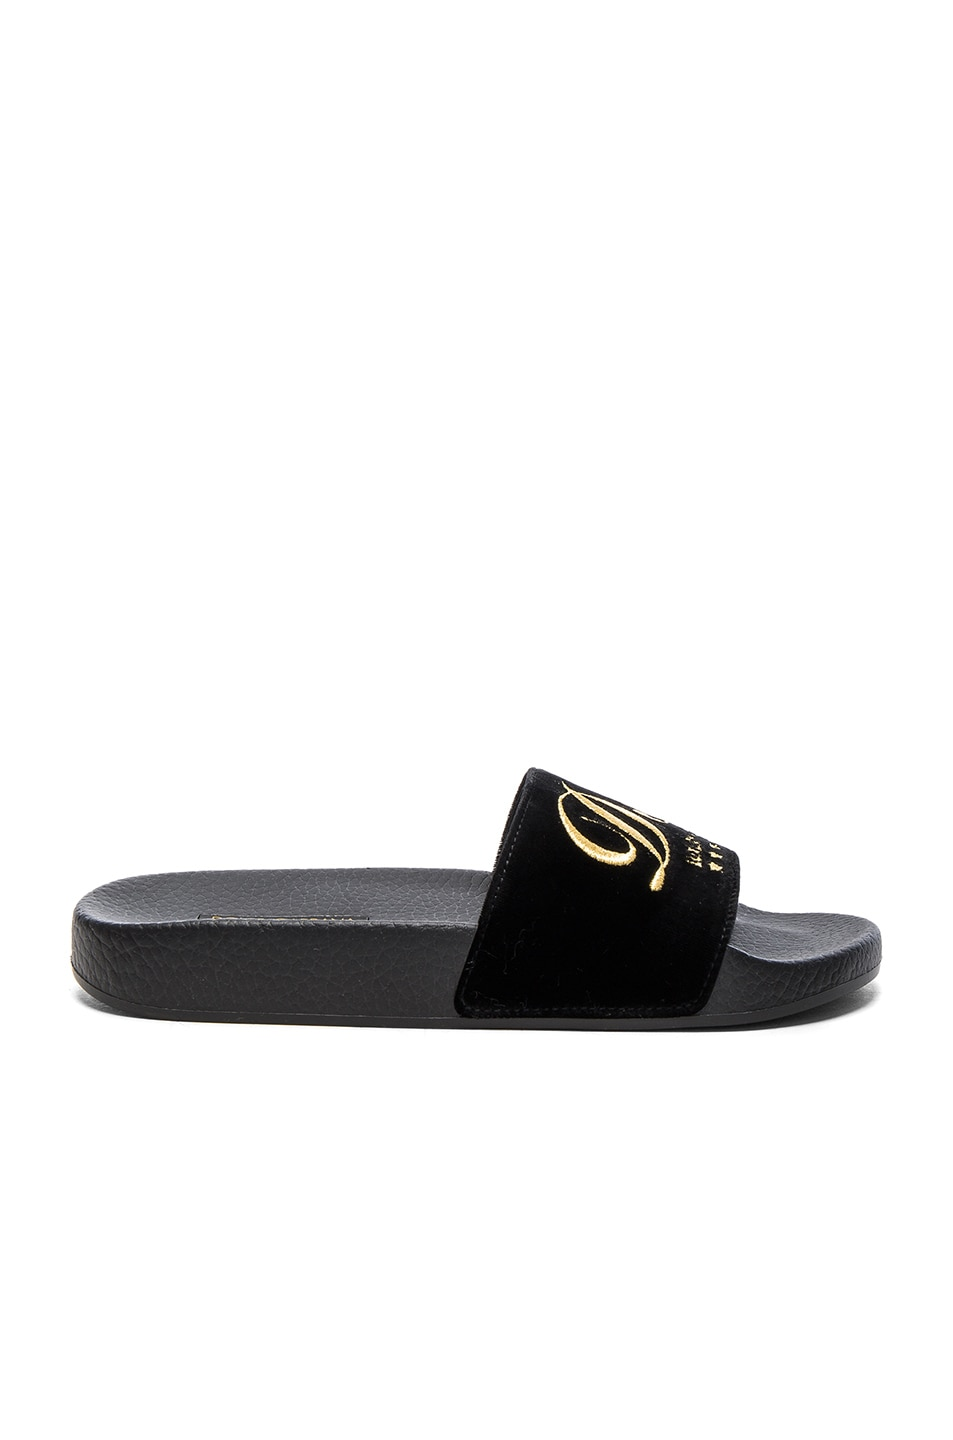 Image 1 of Dolce & Gabbana Velvet DG Pool Slides in Black